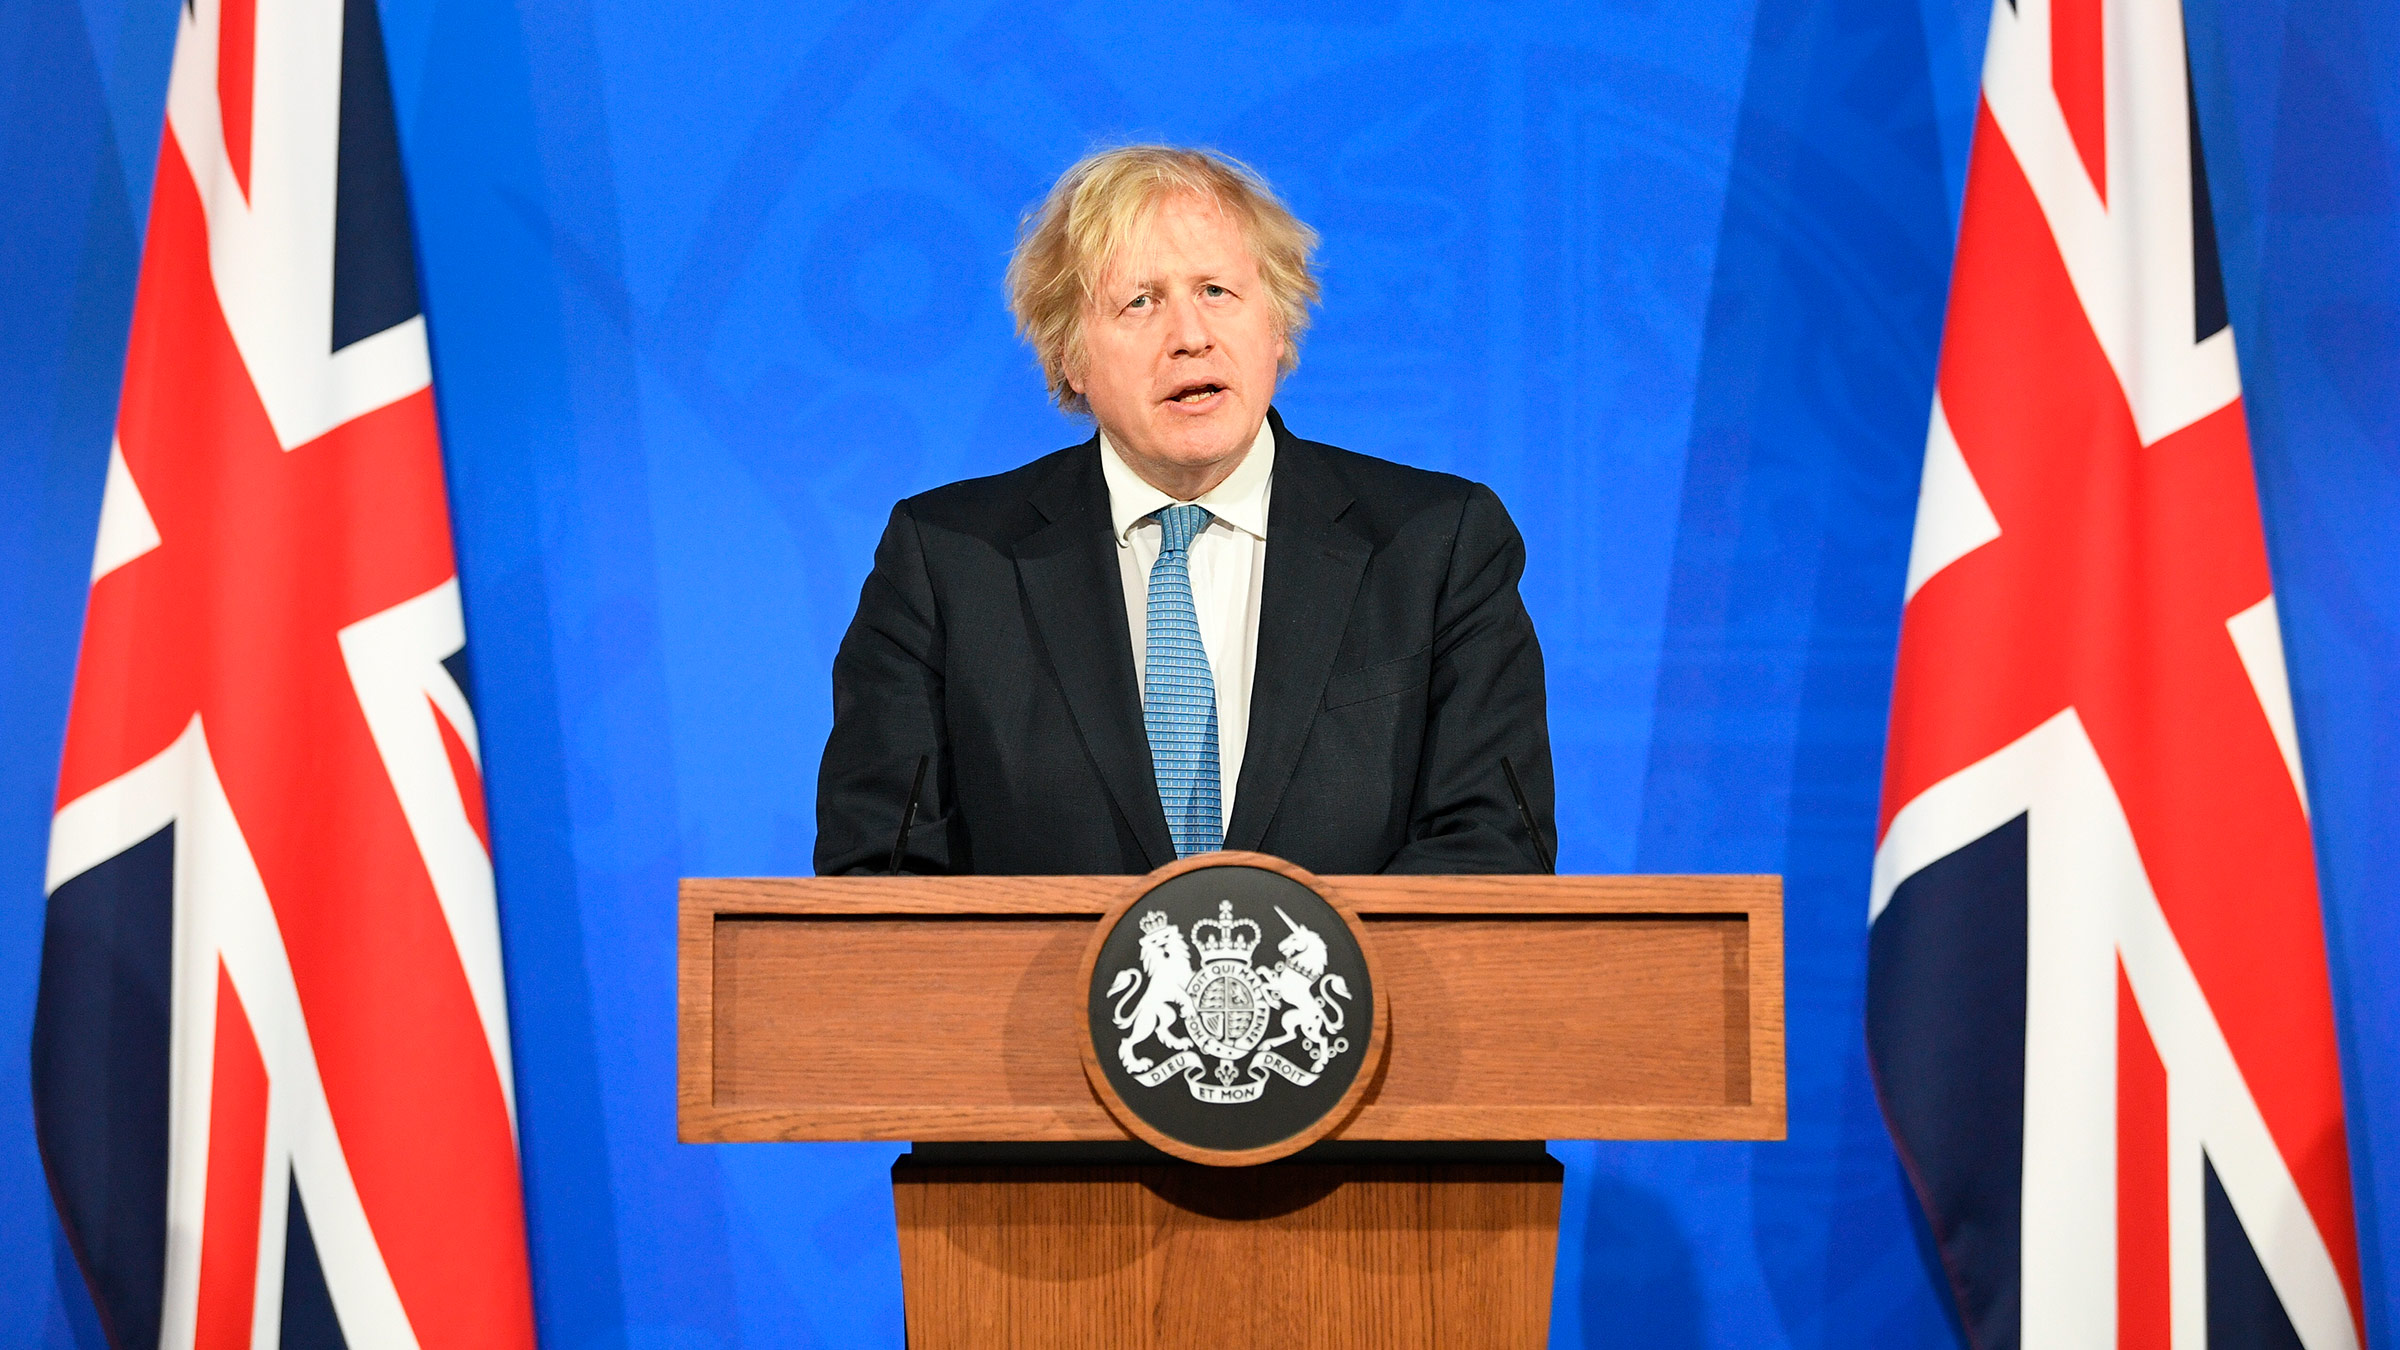 Prime Minister Boris Johnson speaks during a media briefing in Downing Street, London, on Monday, April 5.